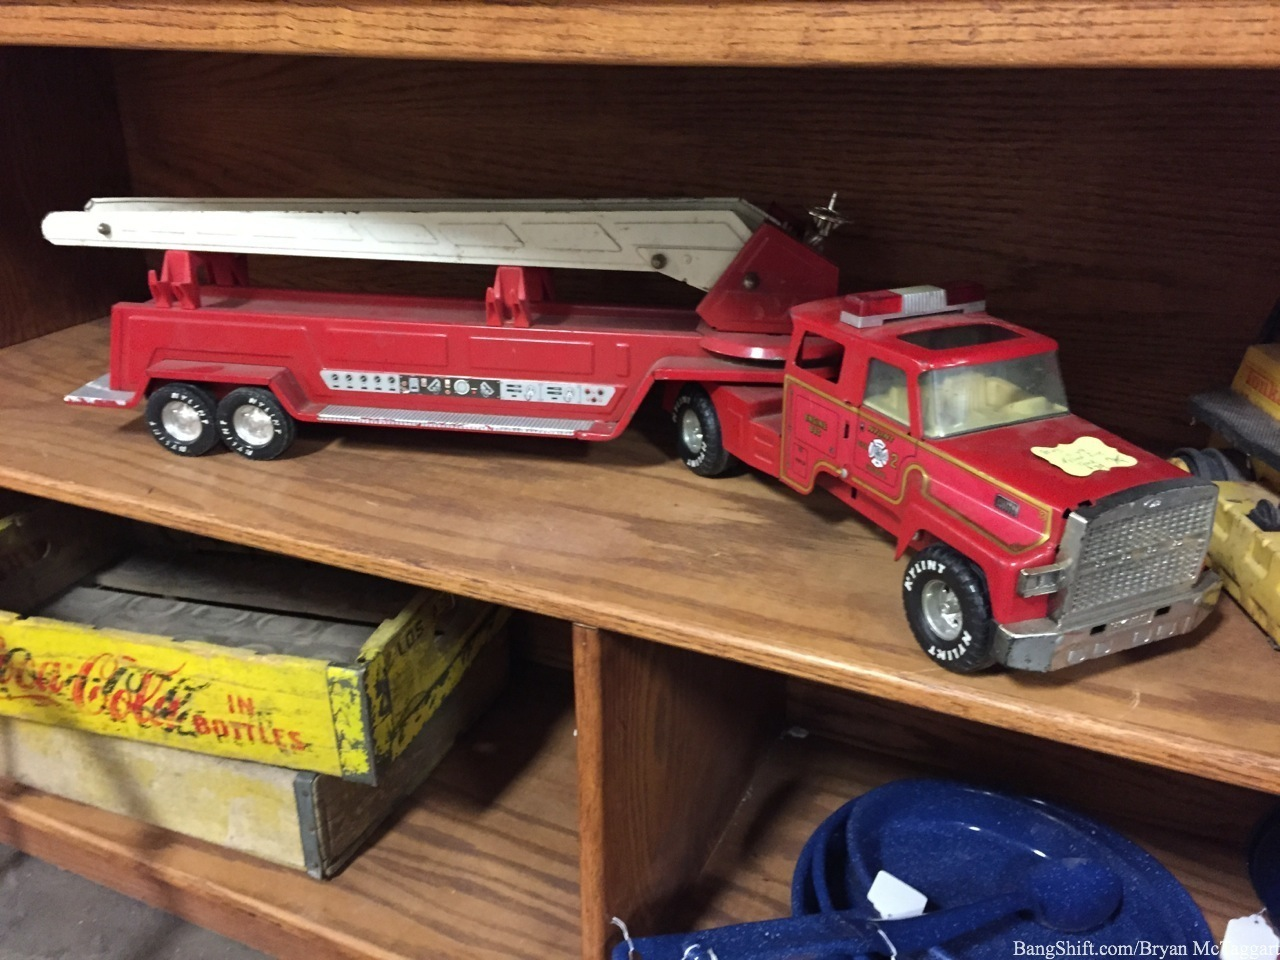 Quick Gallery: Toy Cars From The Past (Ok, I Got Drug Into Antiquing With The Wife…)